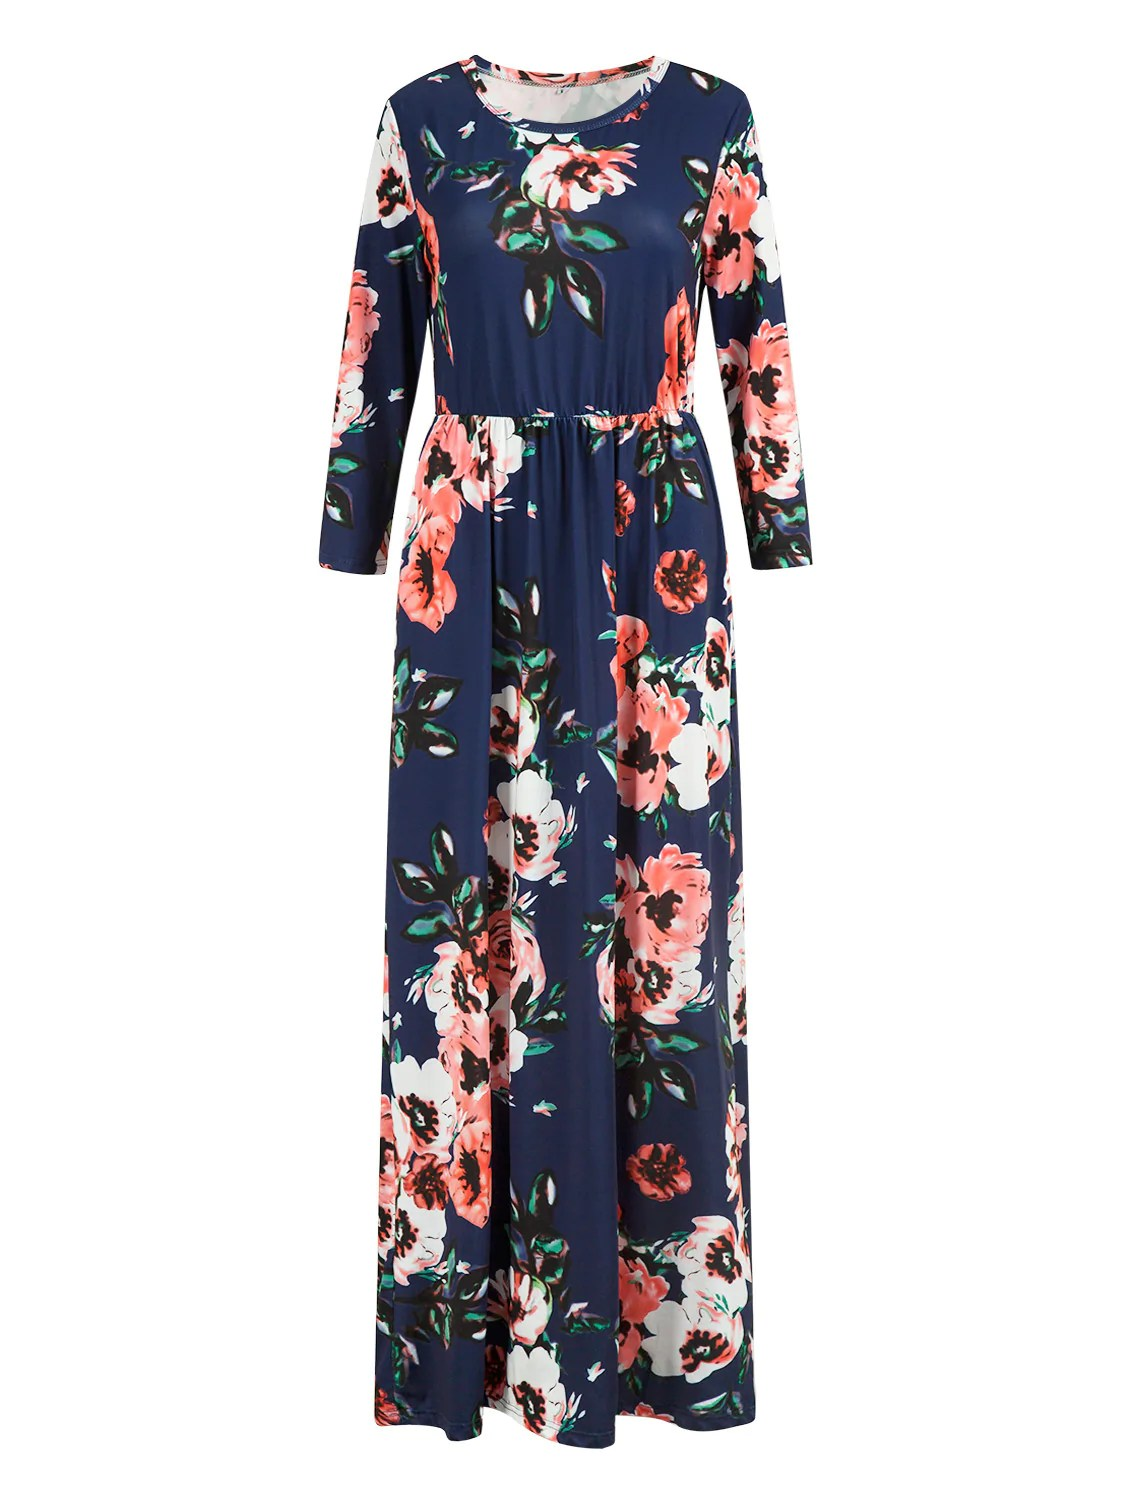 Long Navy Floral Maxi Dress with Sleeves